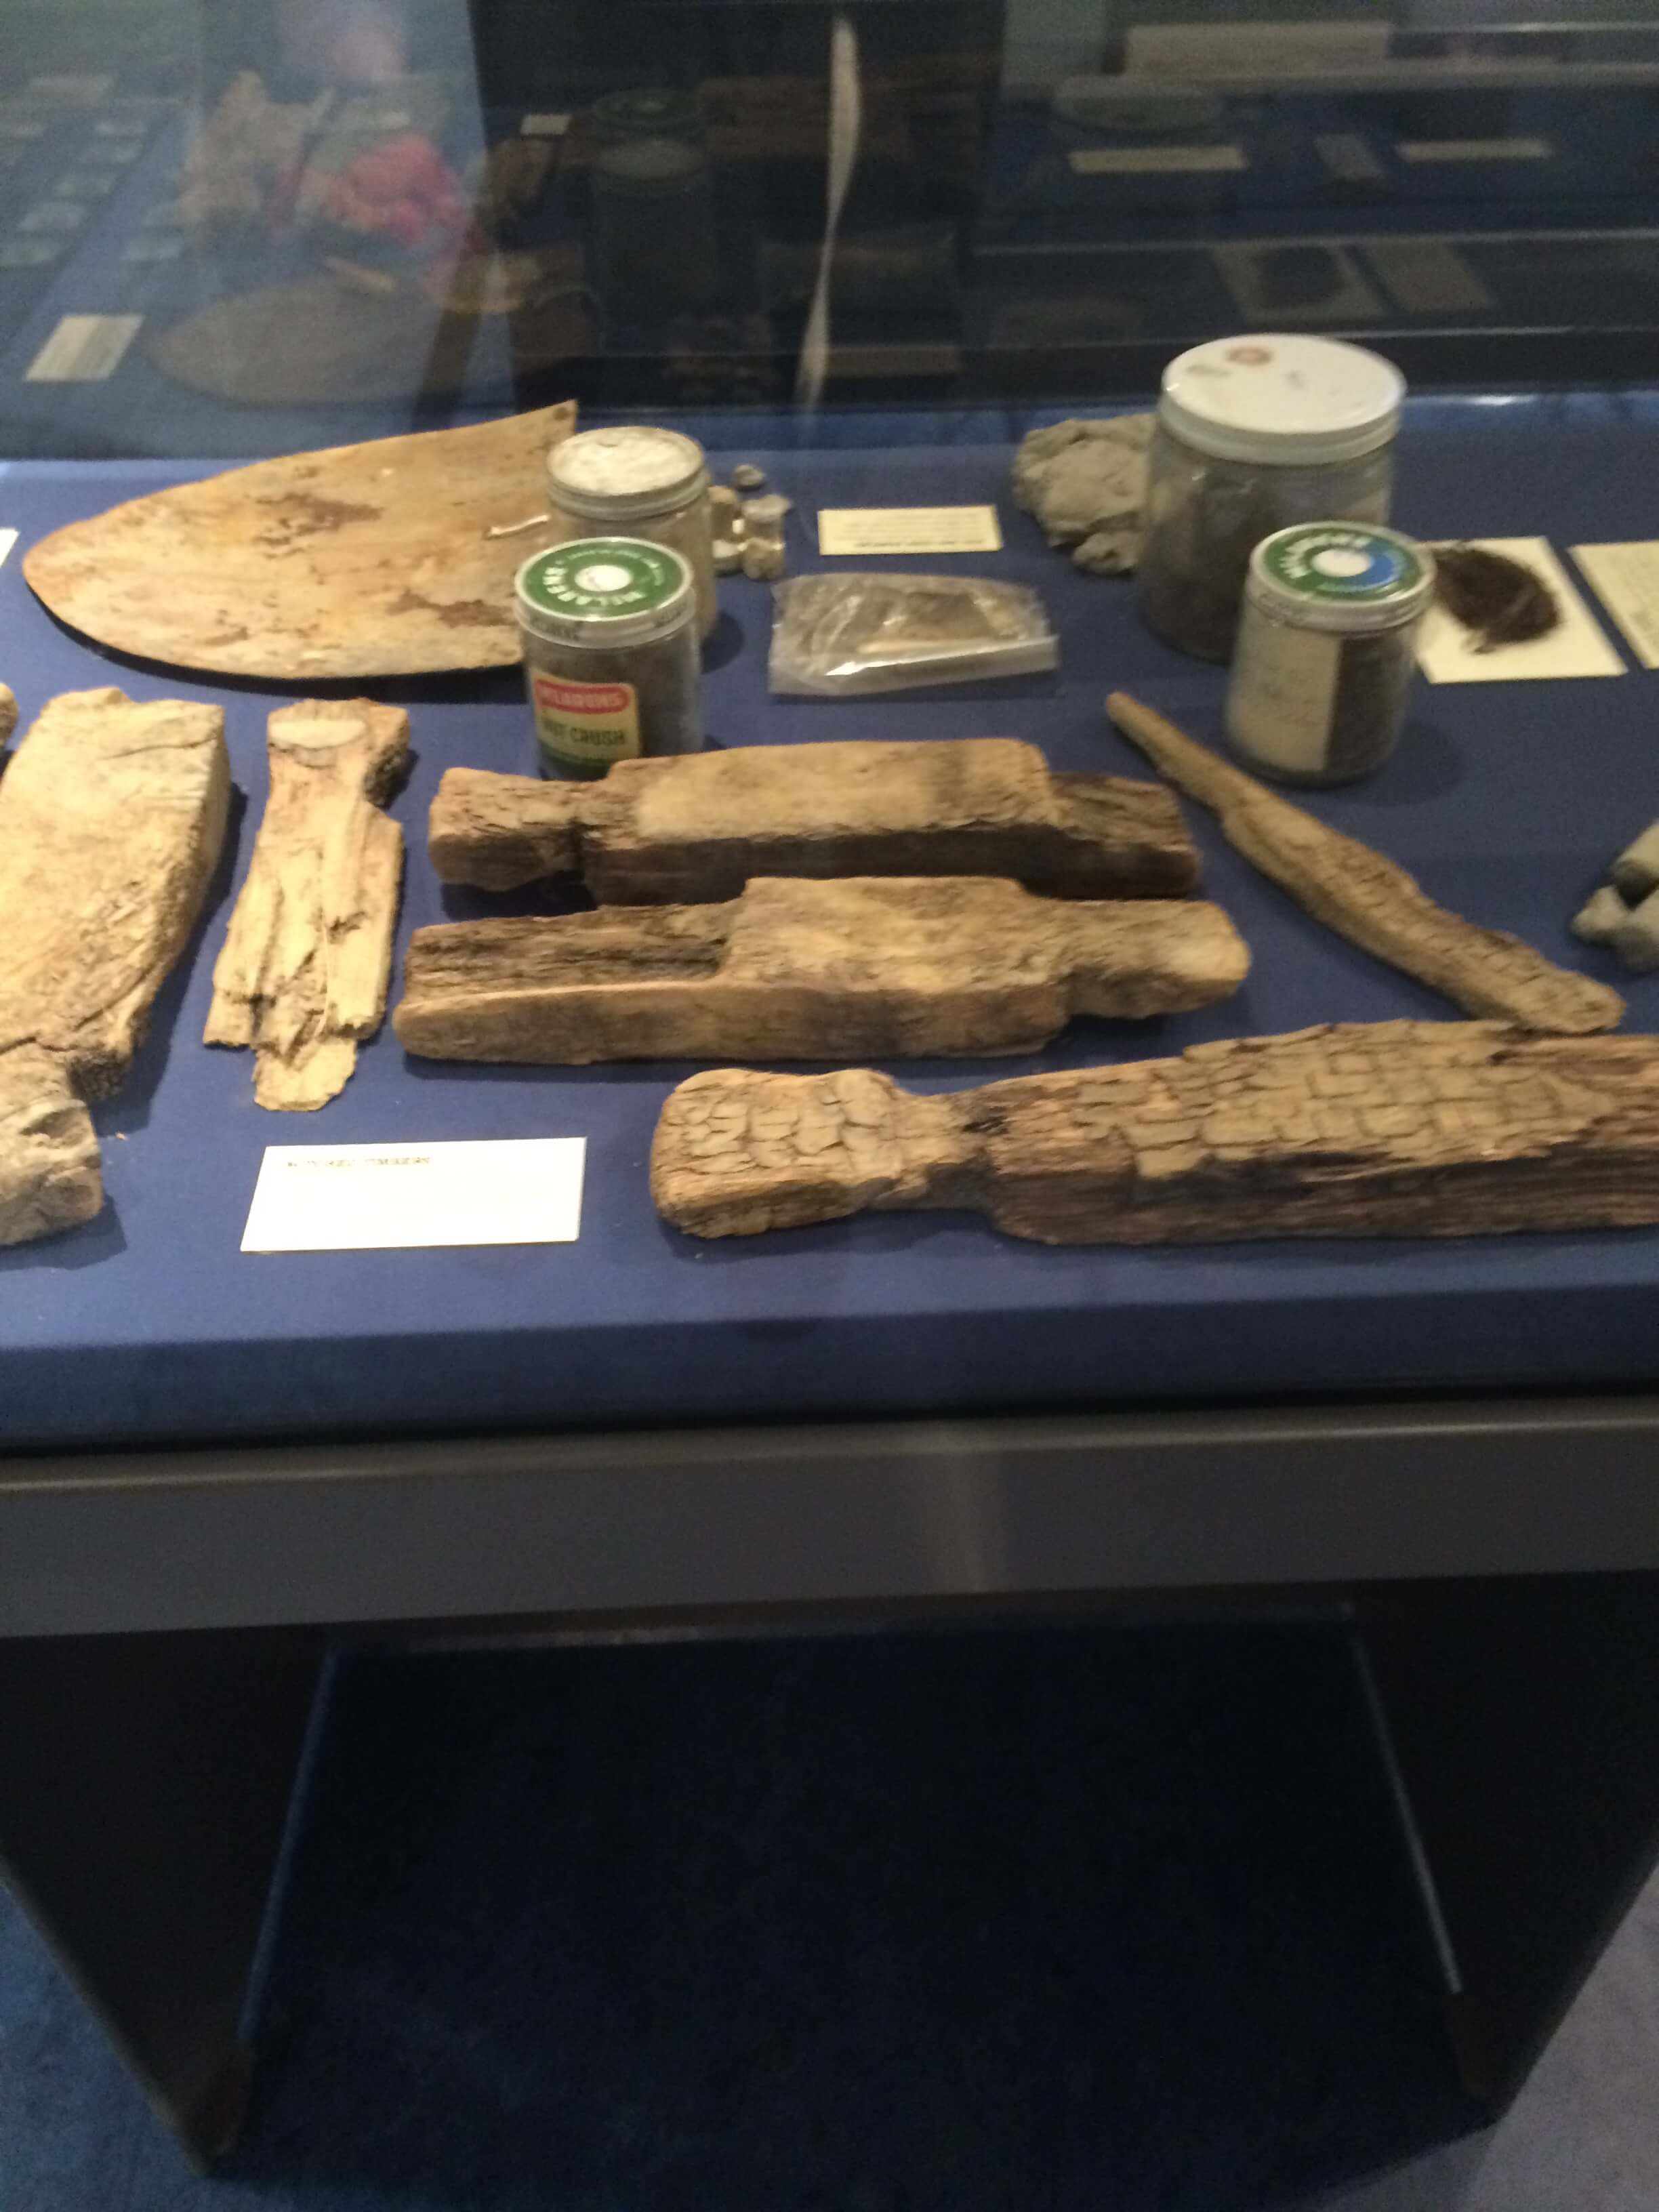 Fragments of timber previous Oak Island treasure hunters have unearthed on the island on display at the Museum of Natural History in Halifax. Image courtesy of Ryan Phillips.